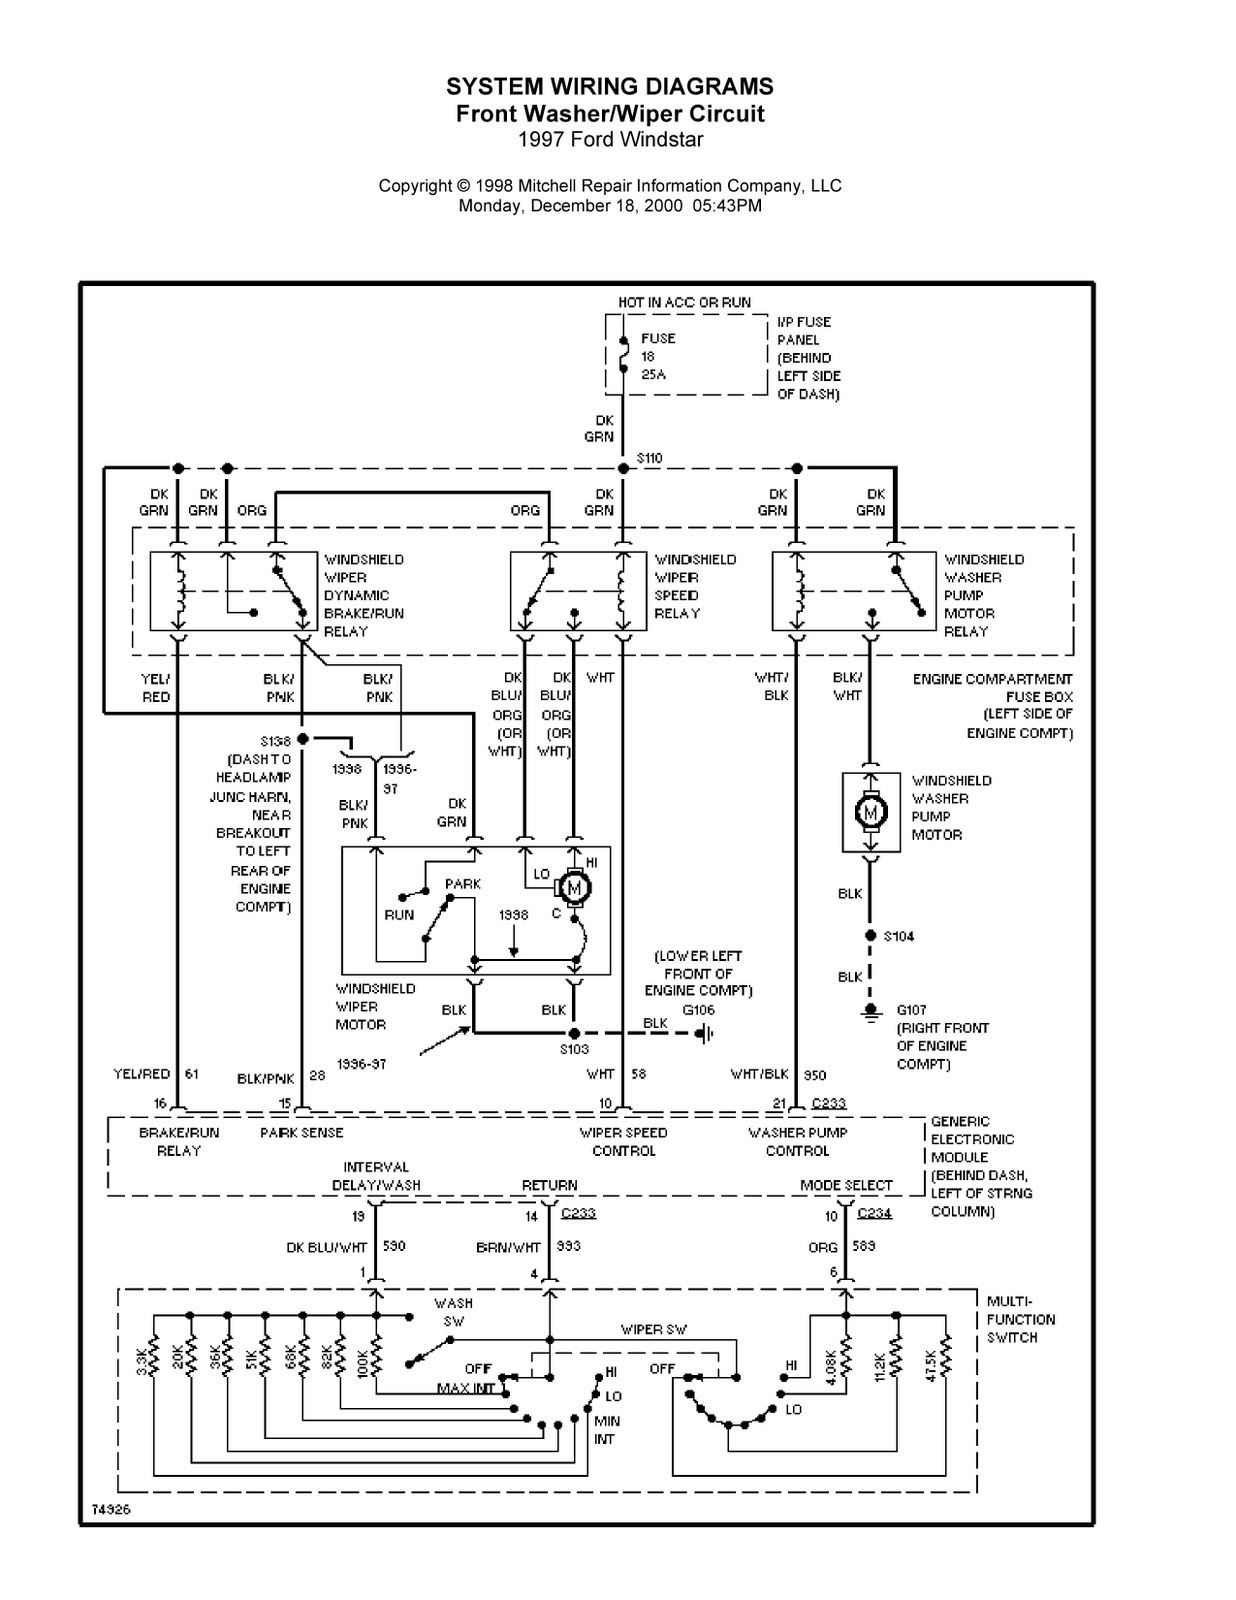 1996 ford windstar fuse diagram solved fuse diagram for ford winstar Bobcat Wiring Schematic on bobcat hydraulic schematic, bobcat controls, bobcat diagrams, bobcat electrical schematic, bobcat filter schematic, bobcat engine, bobcat hvac schematic, bobcat dimensions, hydraulic system schematic,